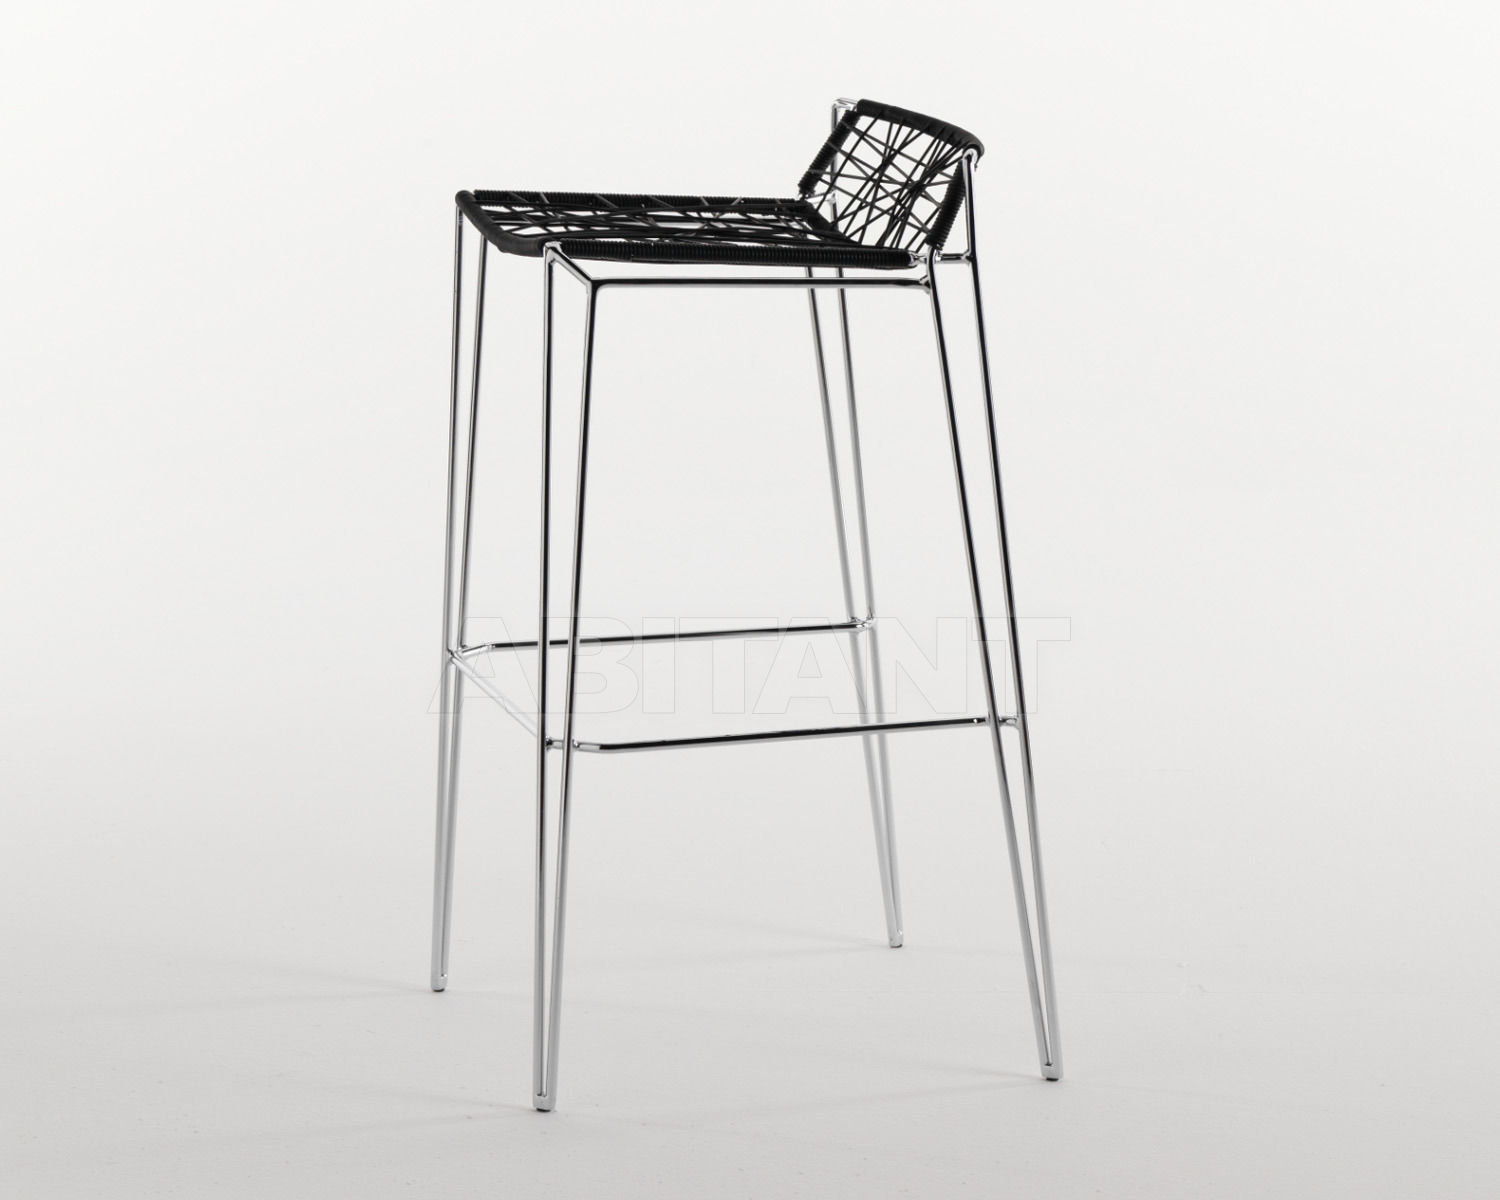 Купить Барный стул  Casprini 2011 - Europe PENELOPE Strip Stool